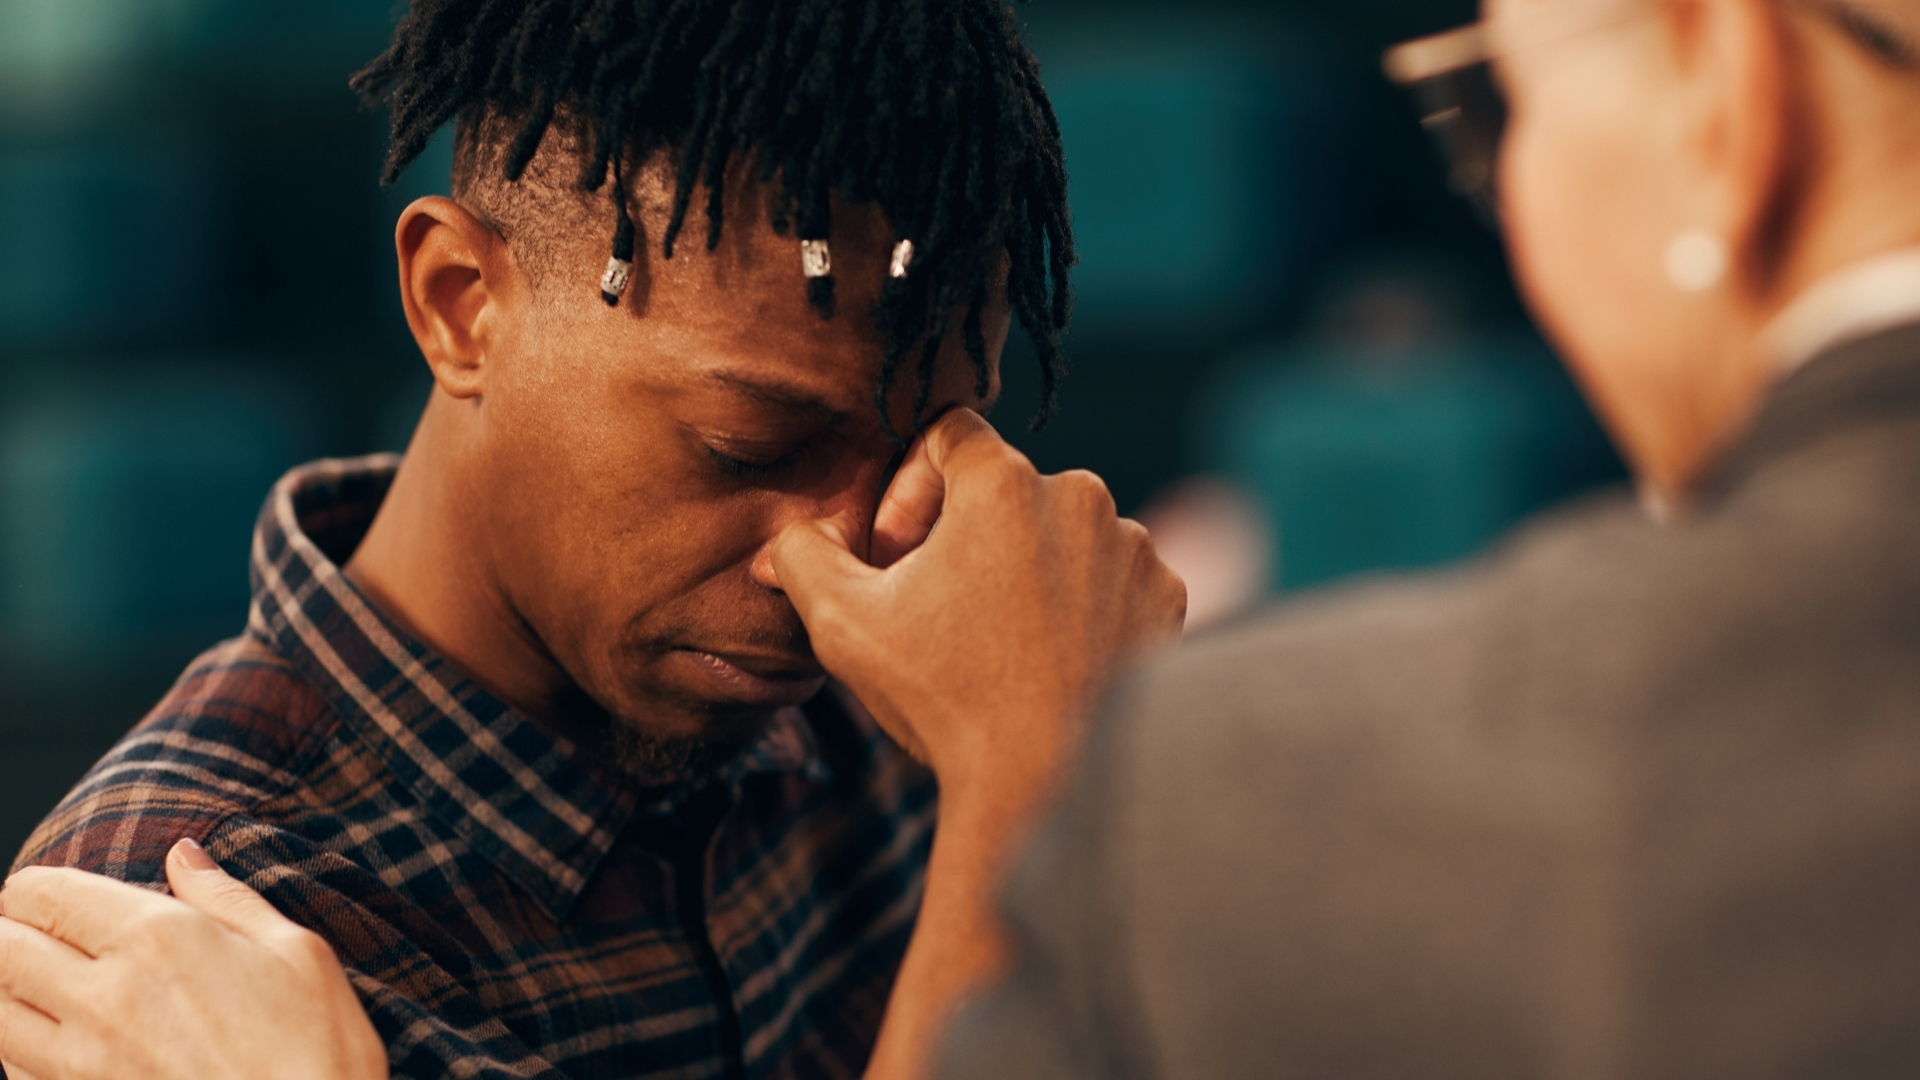 Can Christians mourn? Young African man weeping and being comforted